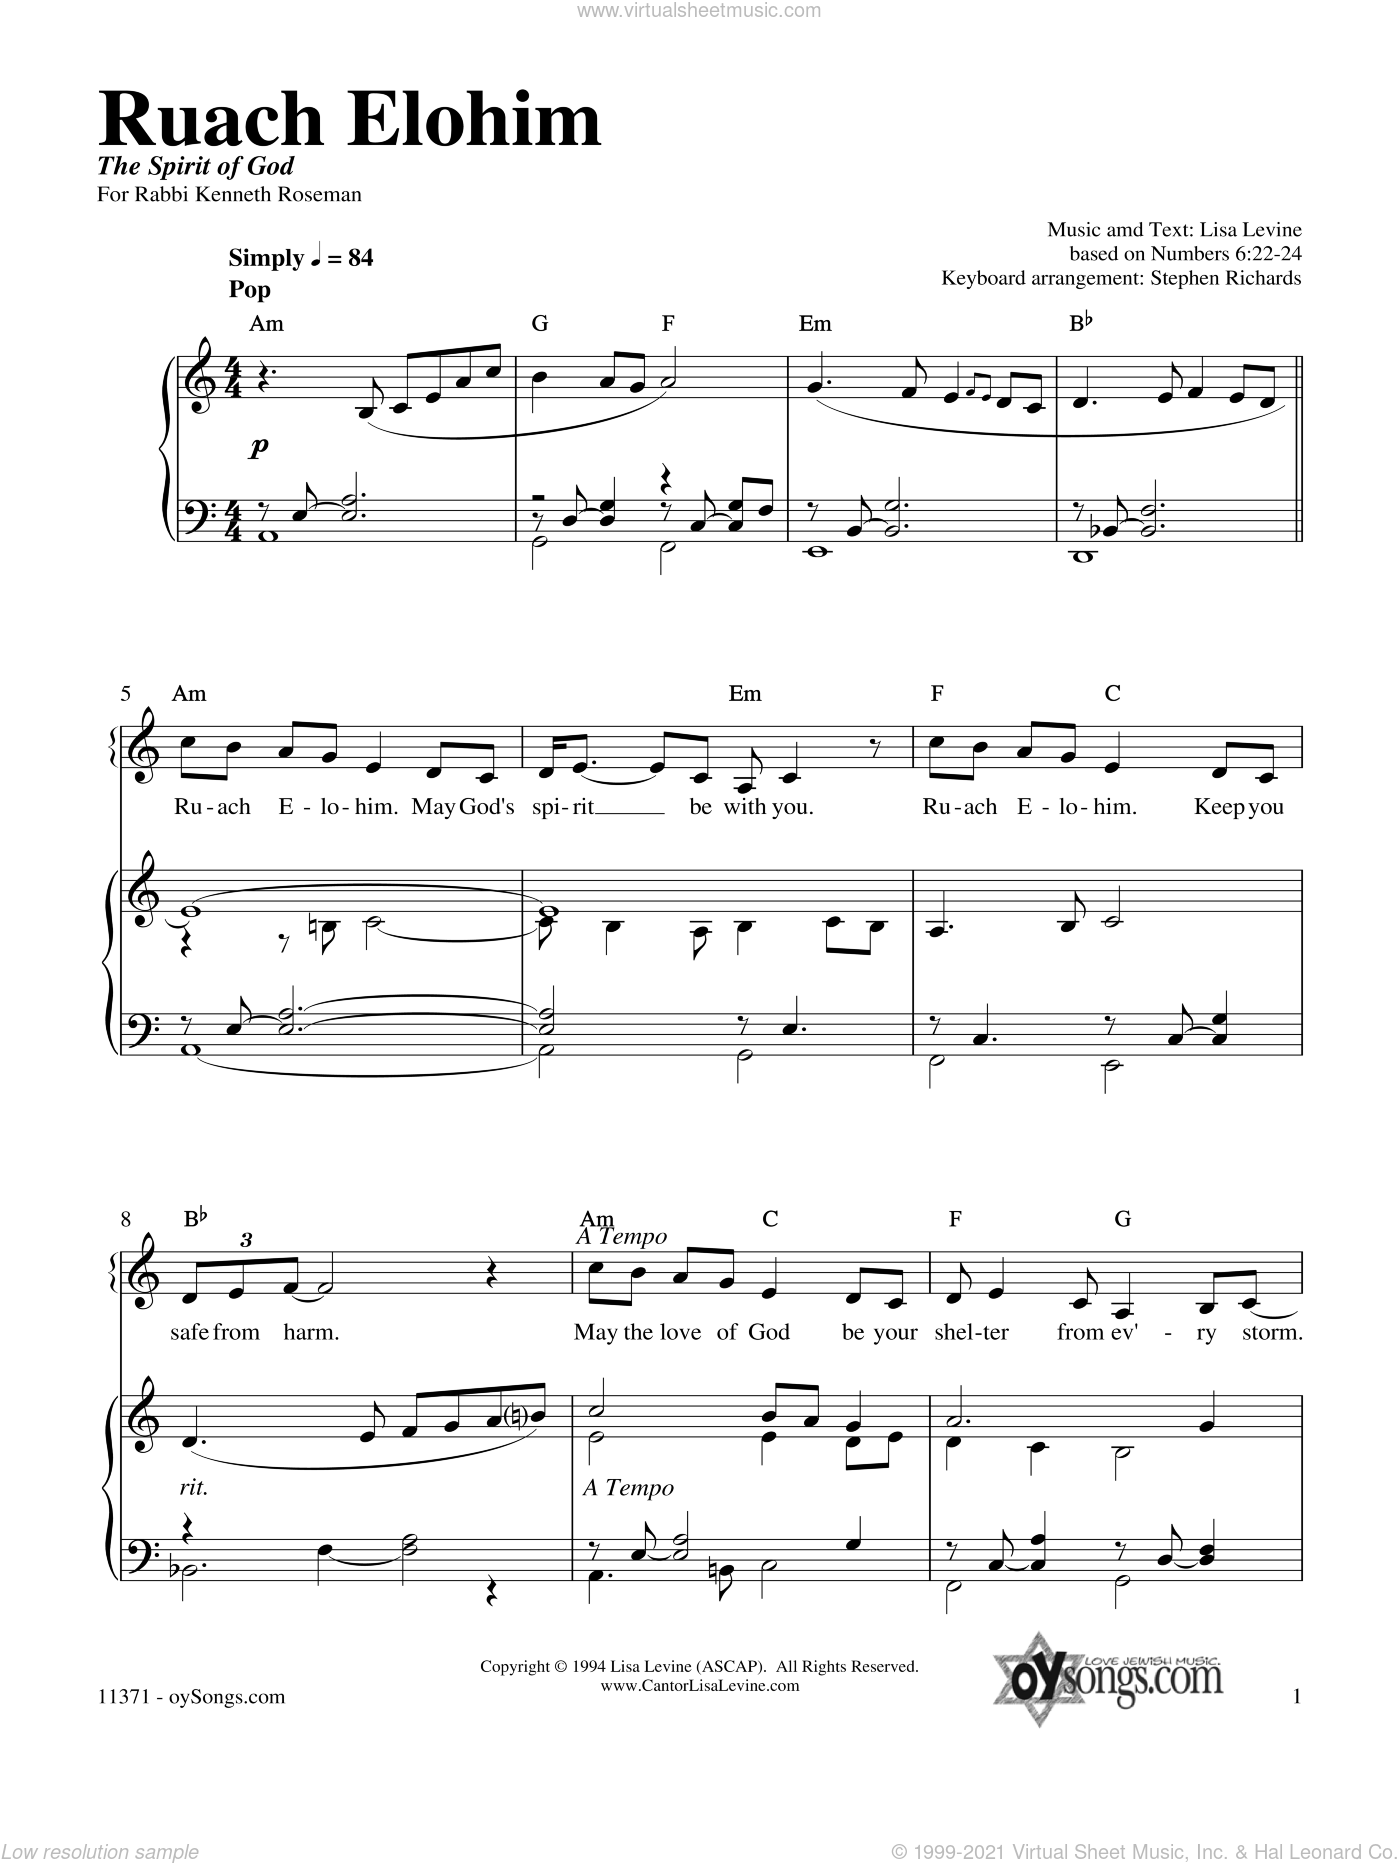 Ruach Elohim sheet music for voice, piano or guitar by Lisa Levine. Score Image Preview.